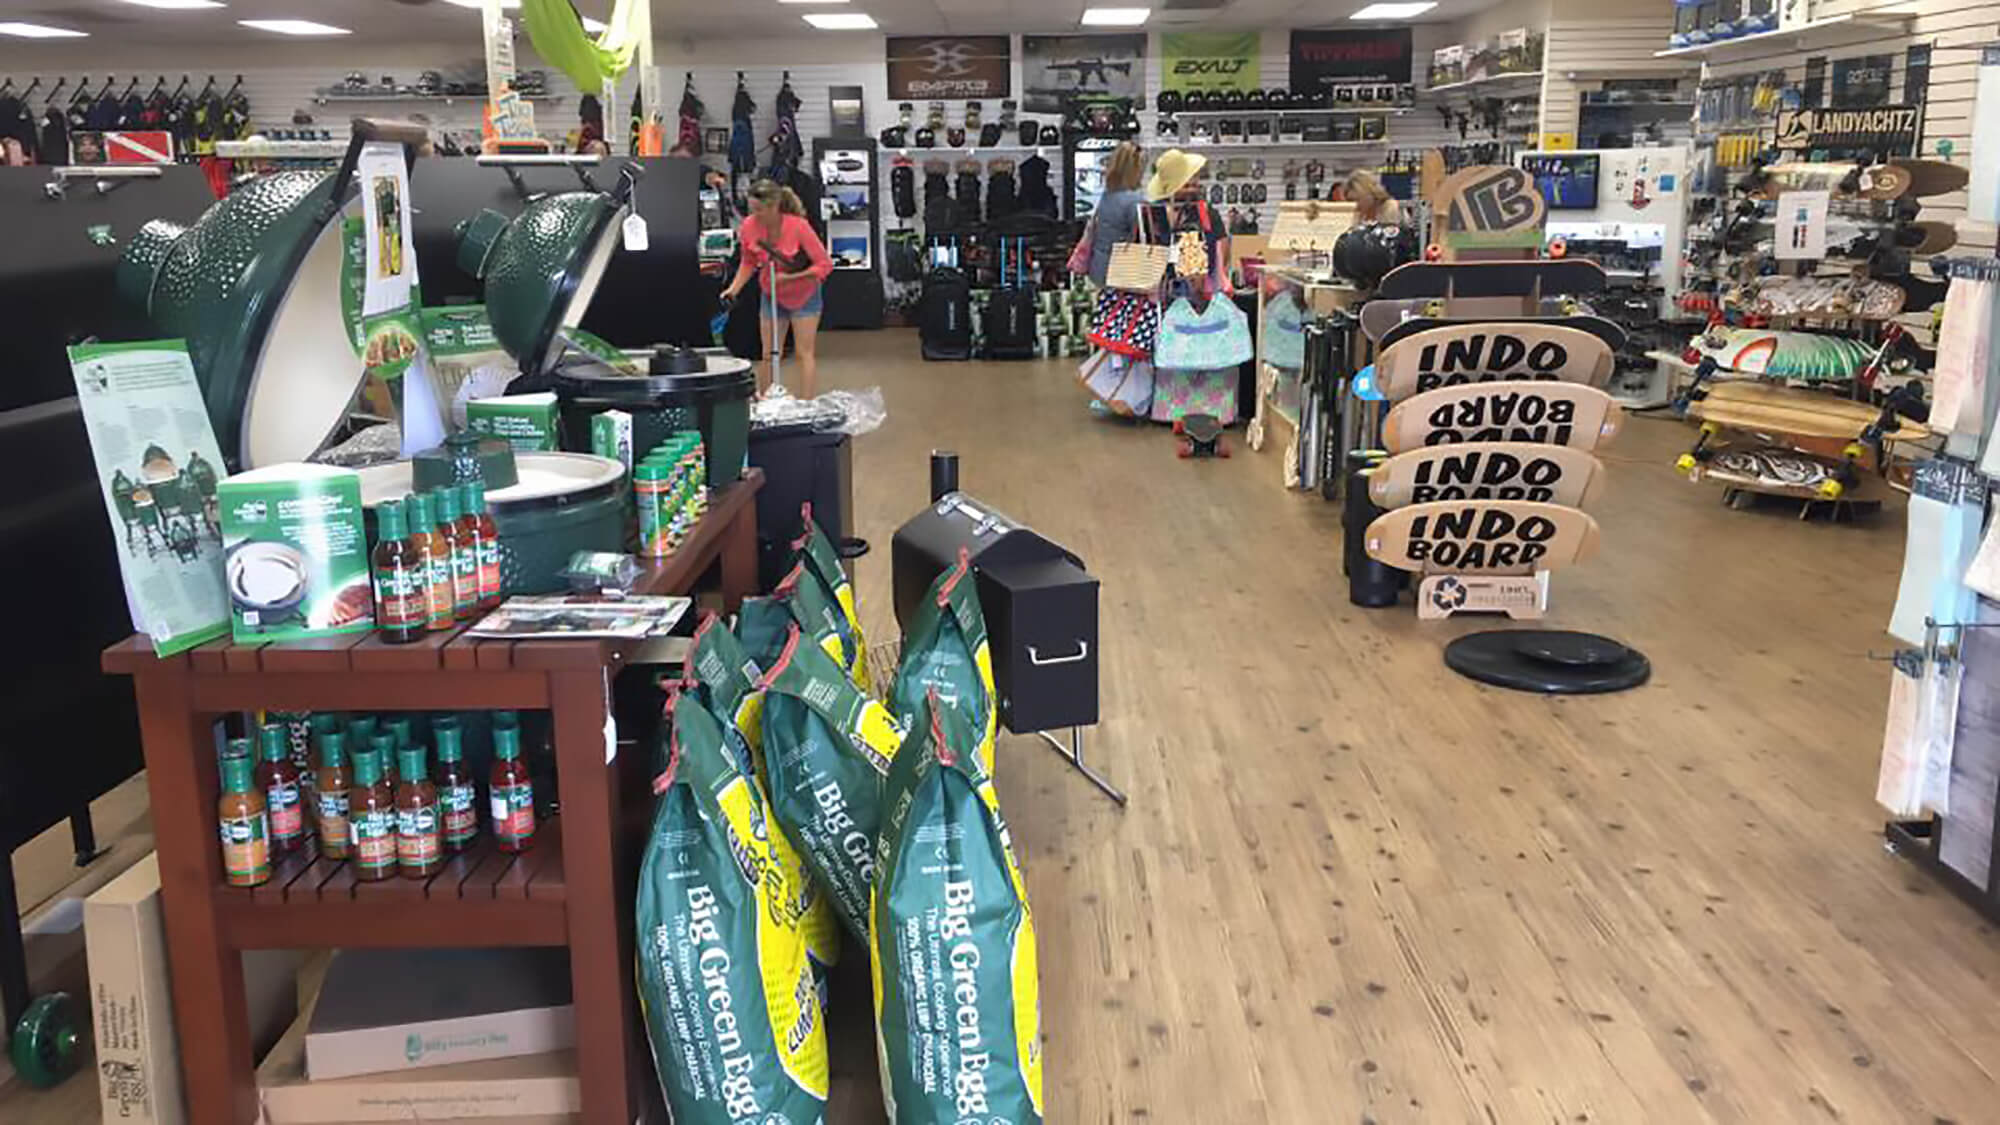 retail floor at Off the Wall Adventures. Grills, indo boards, skate boards and more